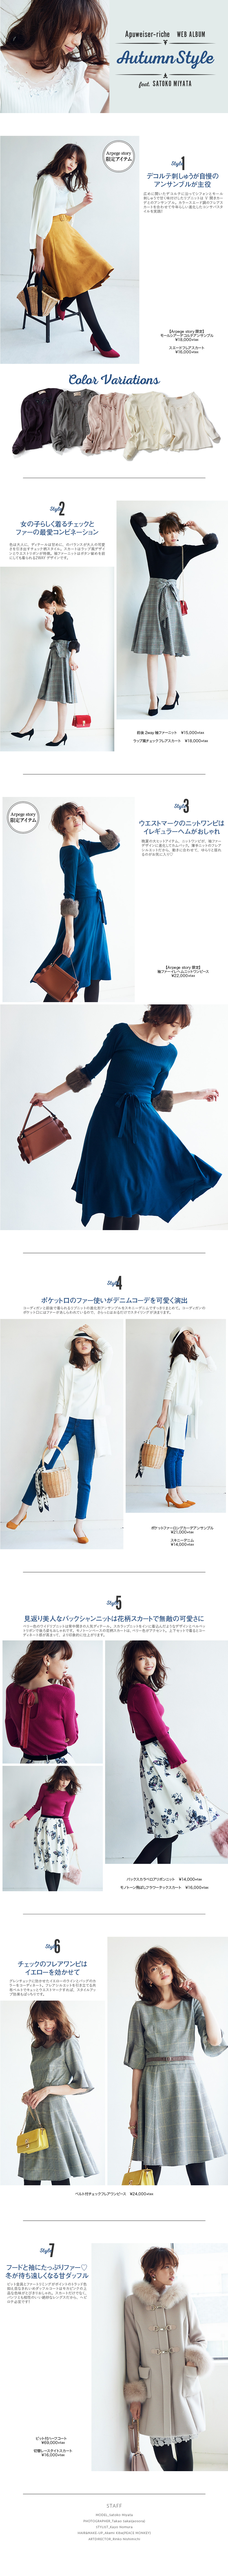 WEB ALBUM vol.23 - Apuweiser-riche × 宮田聡子